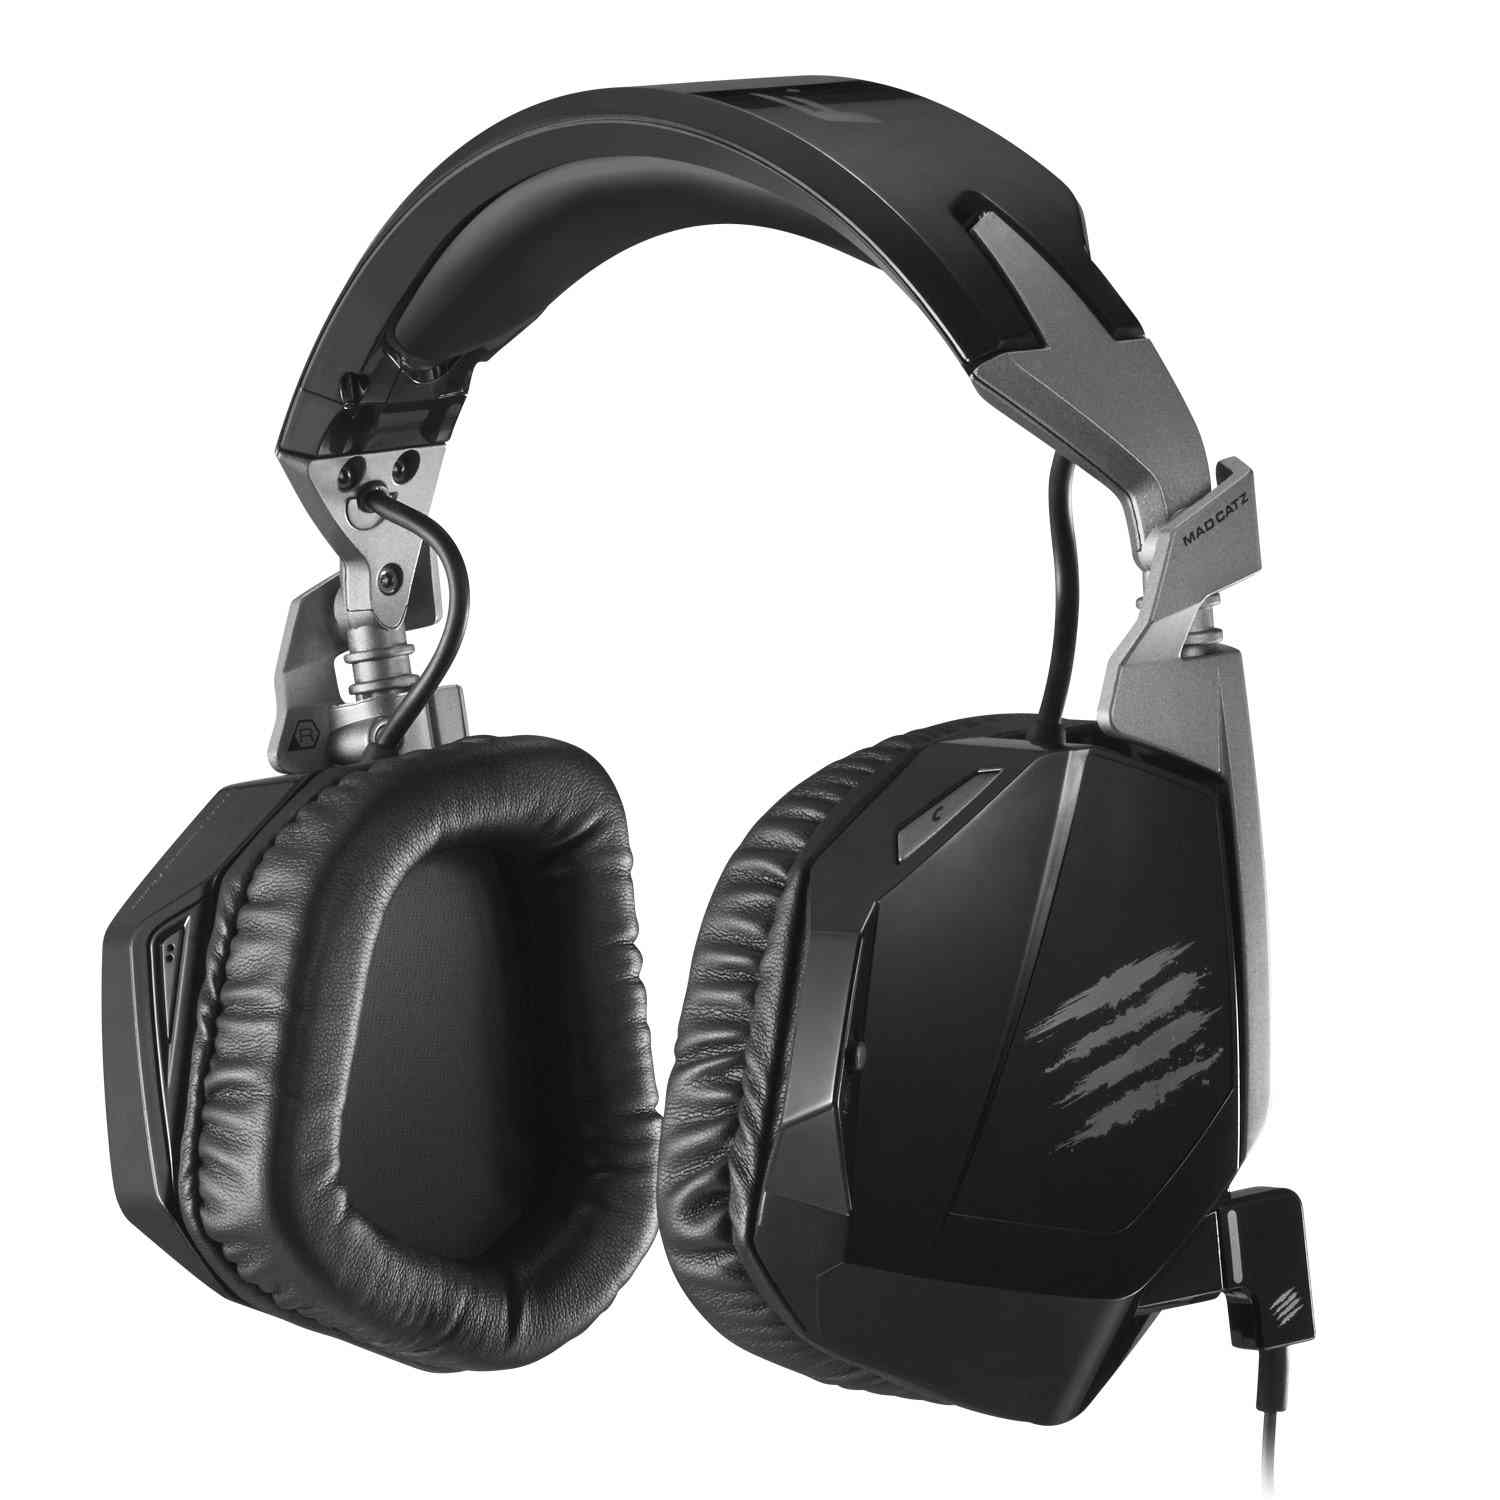 Auriculares Pc Mcz Freq3 Black